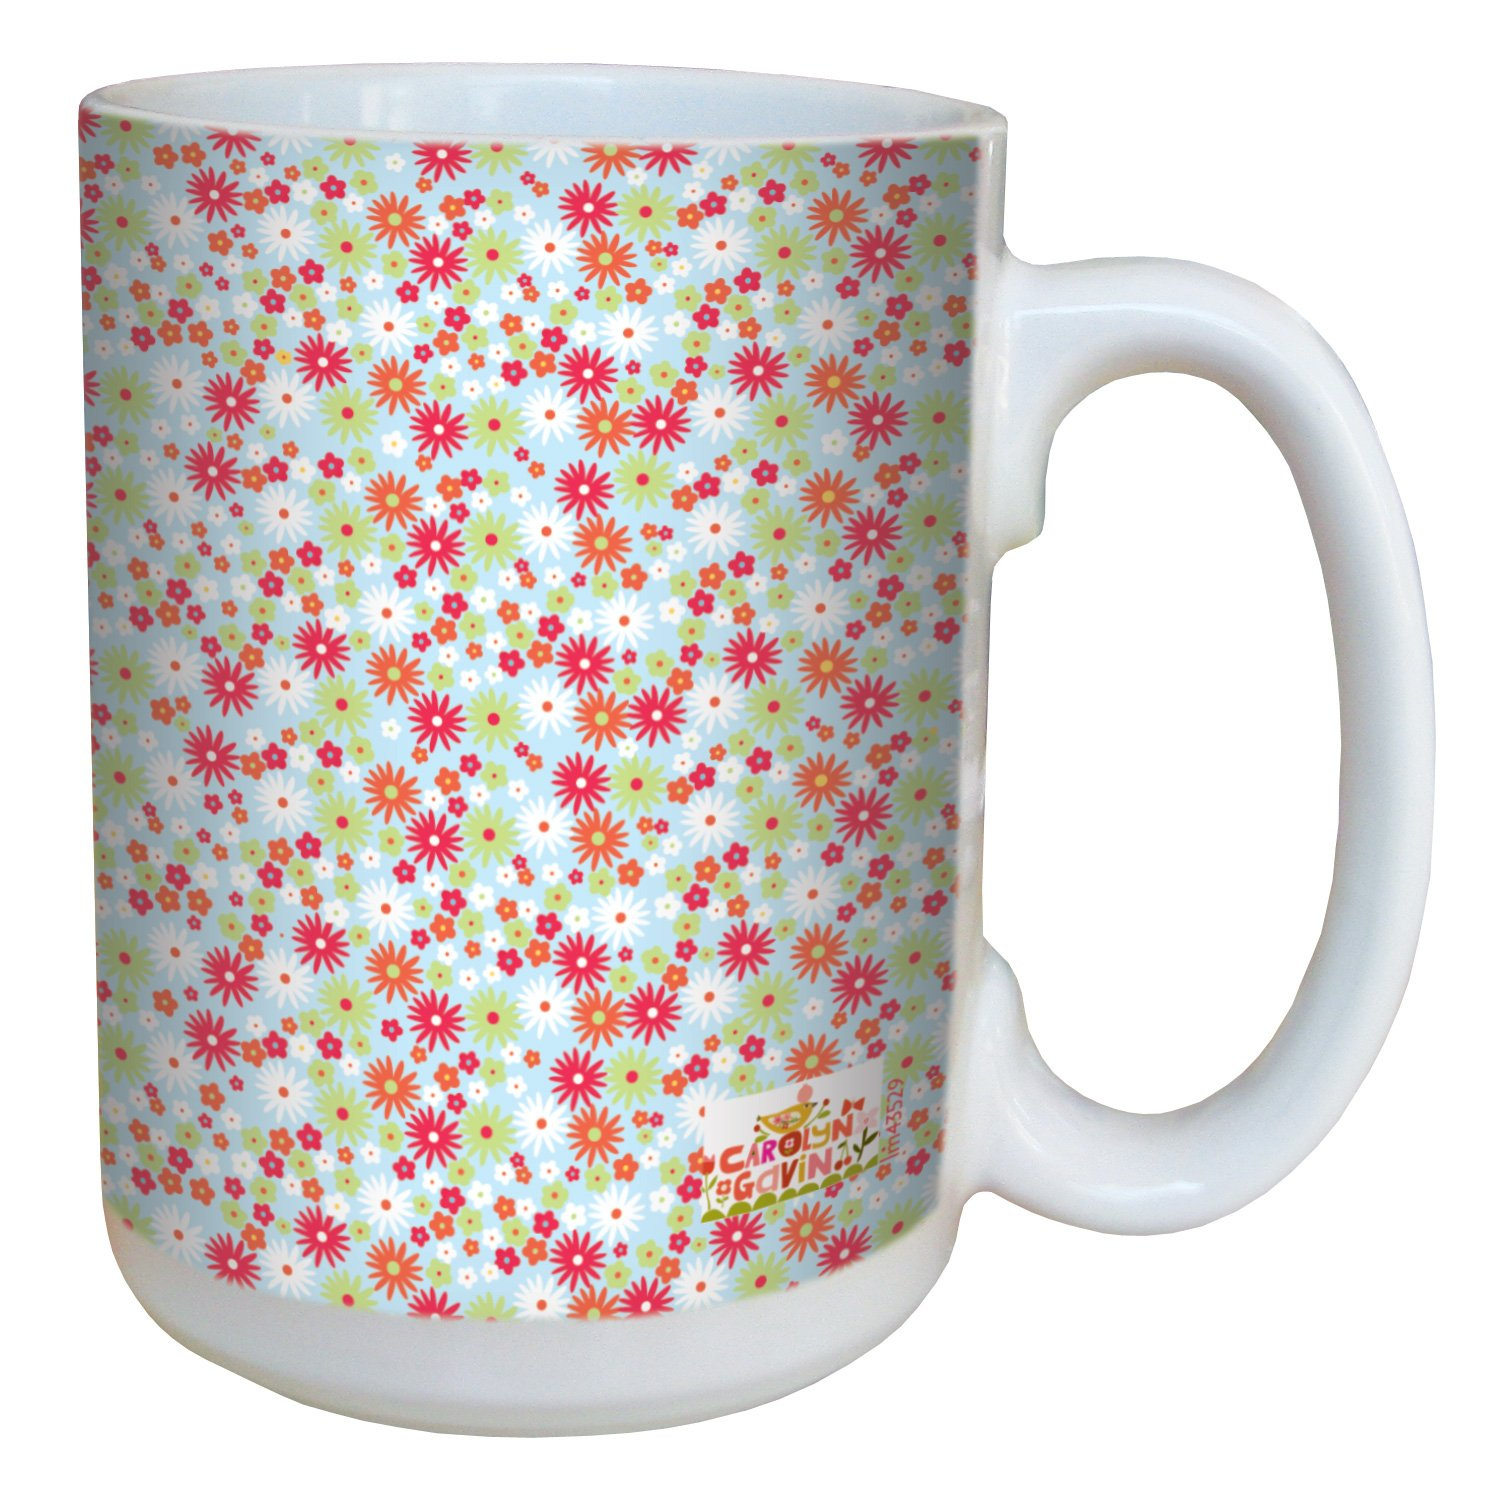 Tree-Free Greetings lm43529 Homey Little Daisies by Carolyn Gavin Ceramic Mug with Full-Sized Handle, 15-Ounce Tree Free